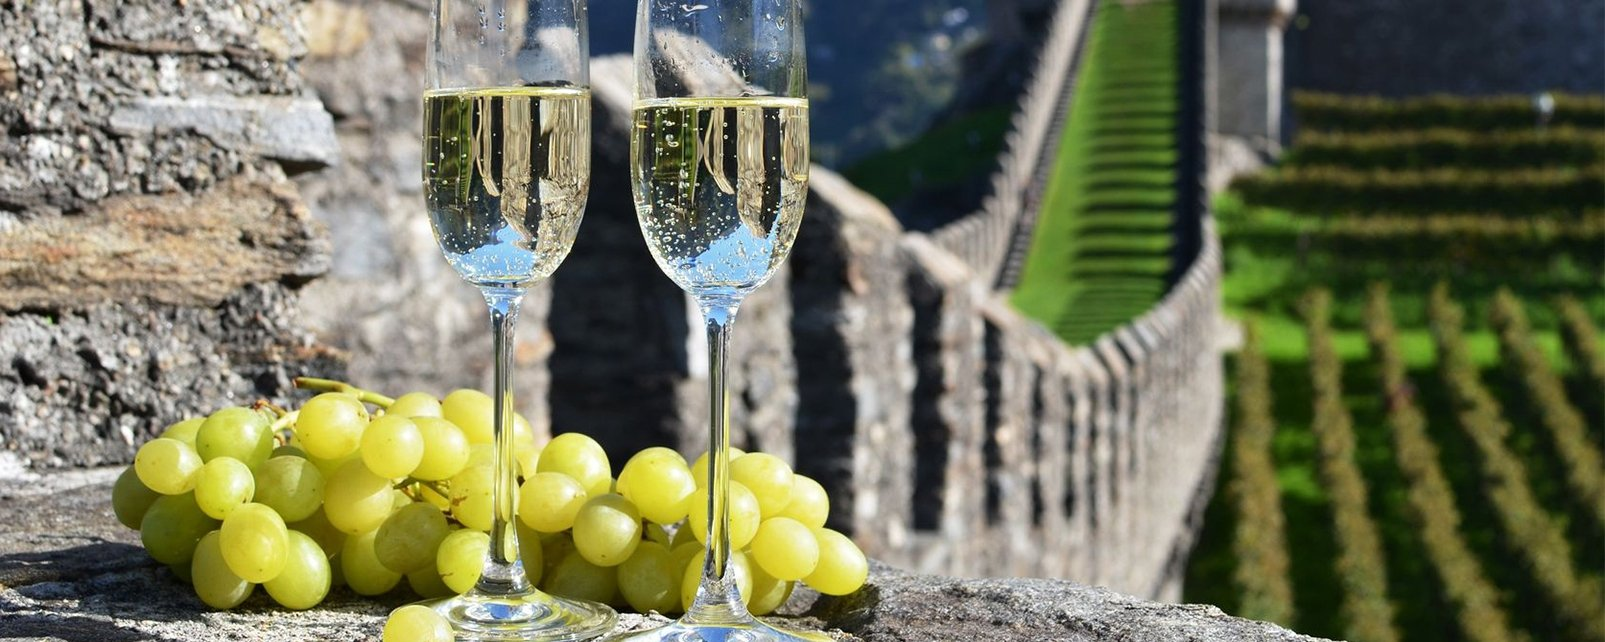 , Aisne Champagne, Enogastronomy, Picardy